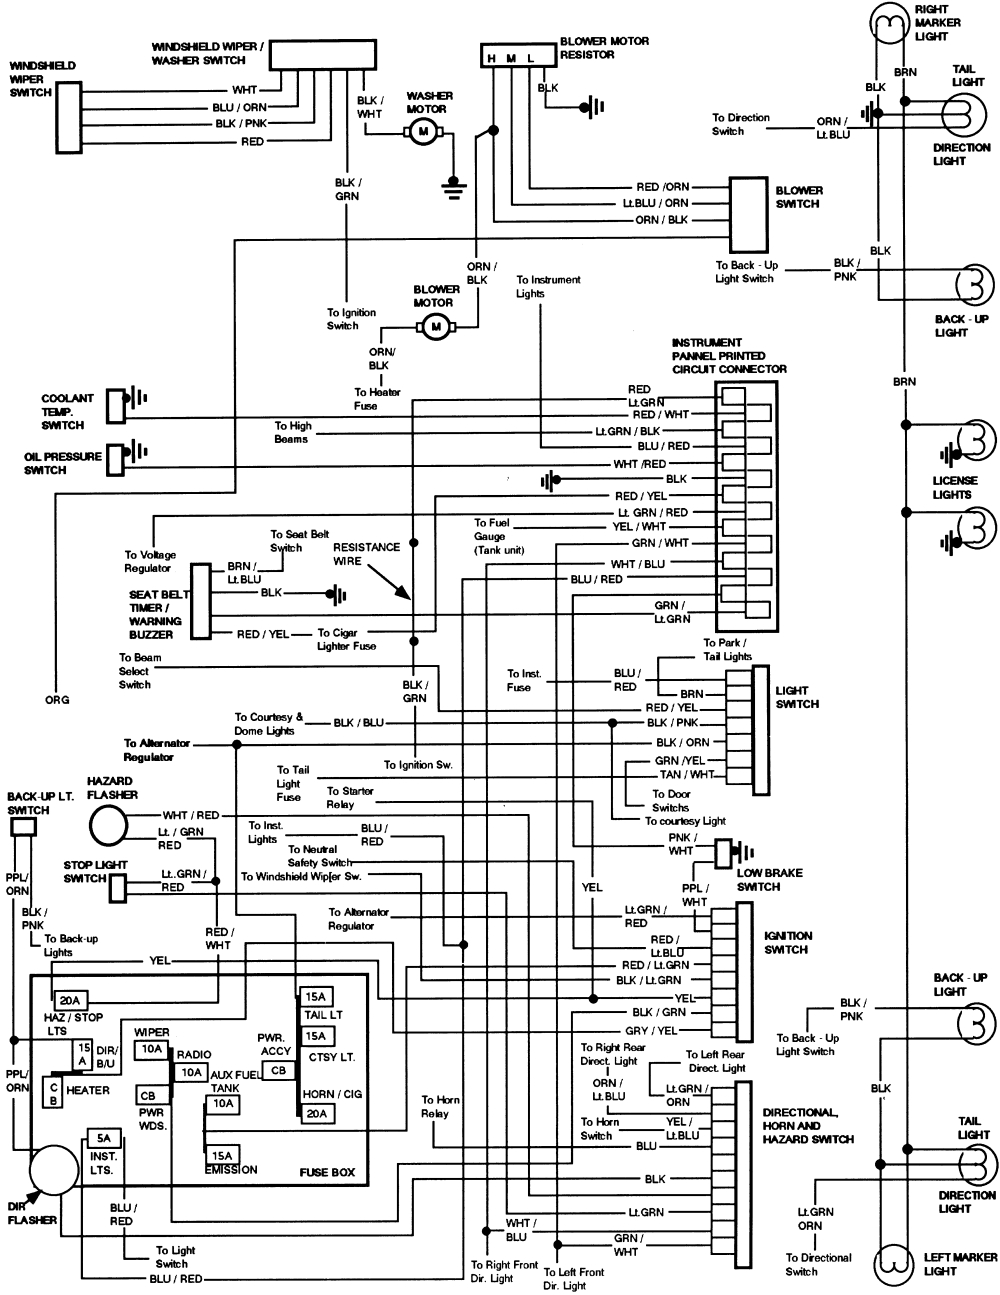 1984 ford f250 ignition wiring diagram